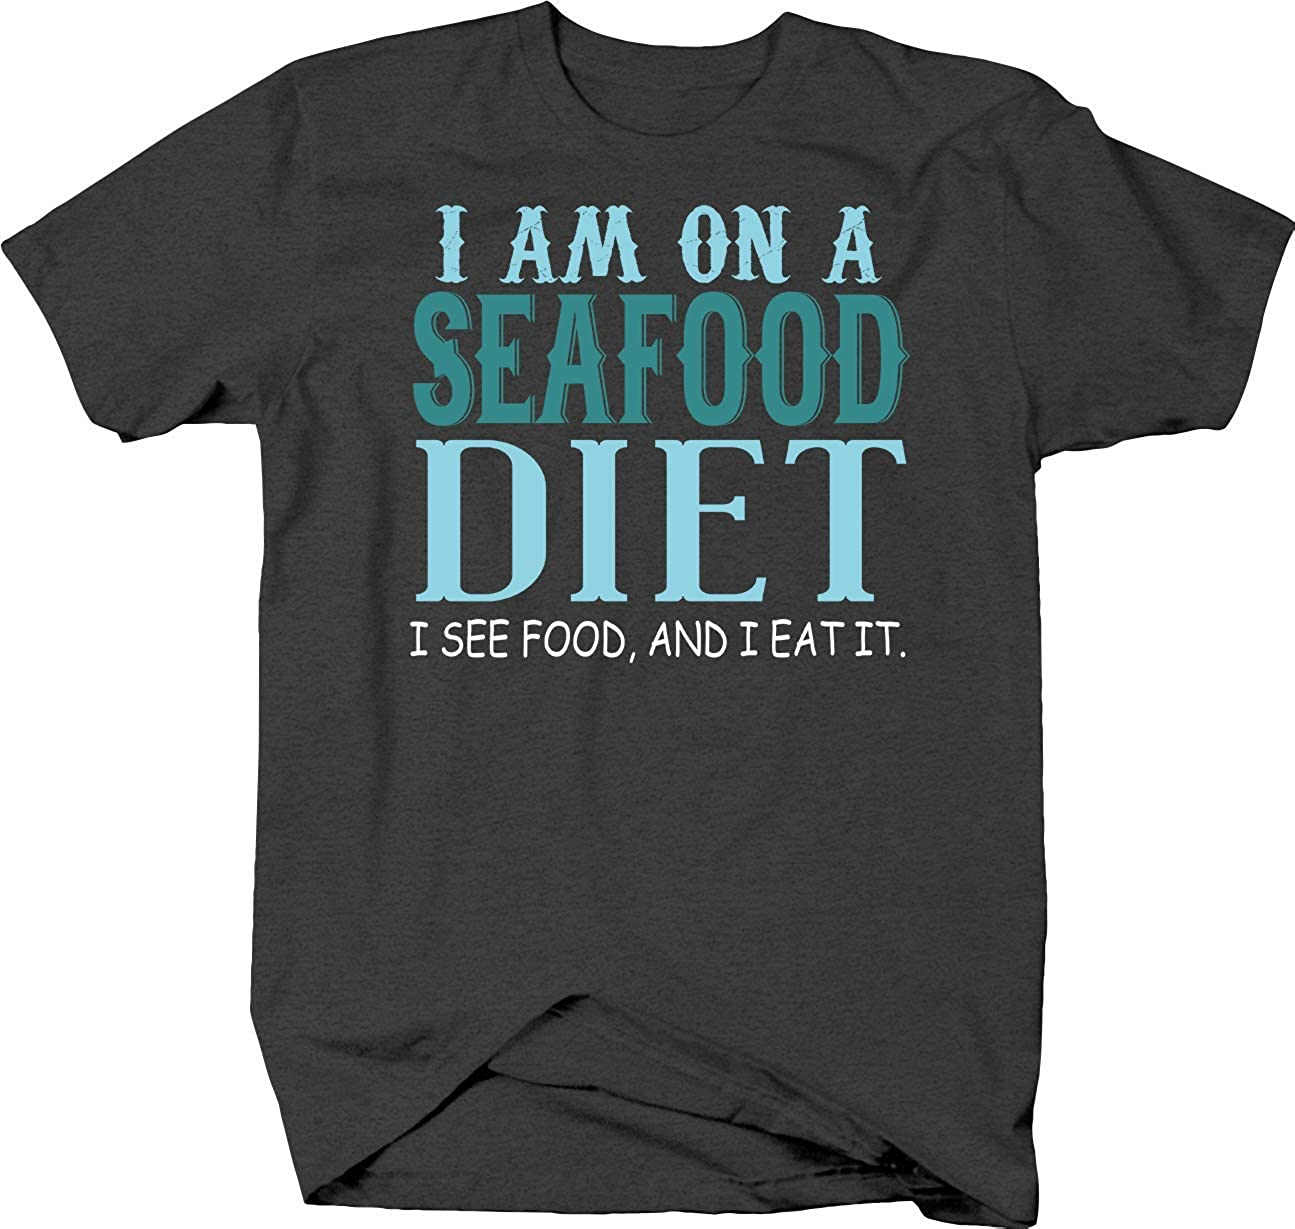 On A Seafood Diet I See Food I Eat It Funny Weight Fitness Joke T Shirt for Men